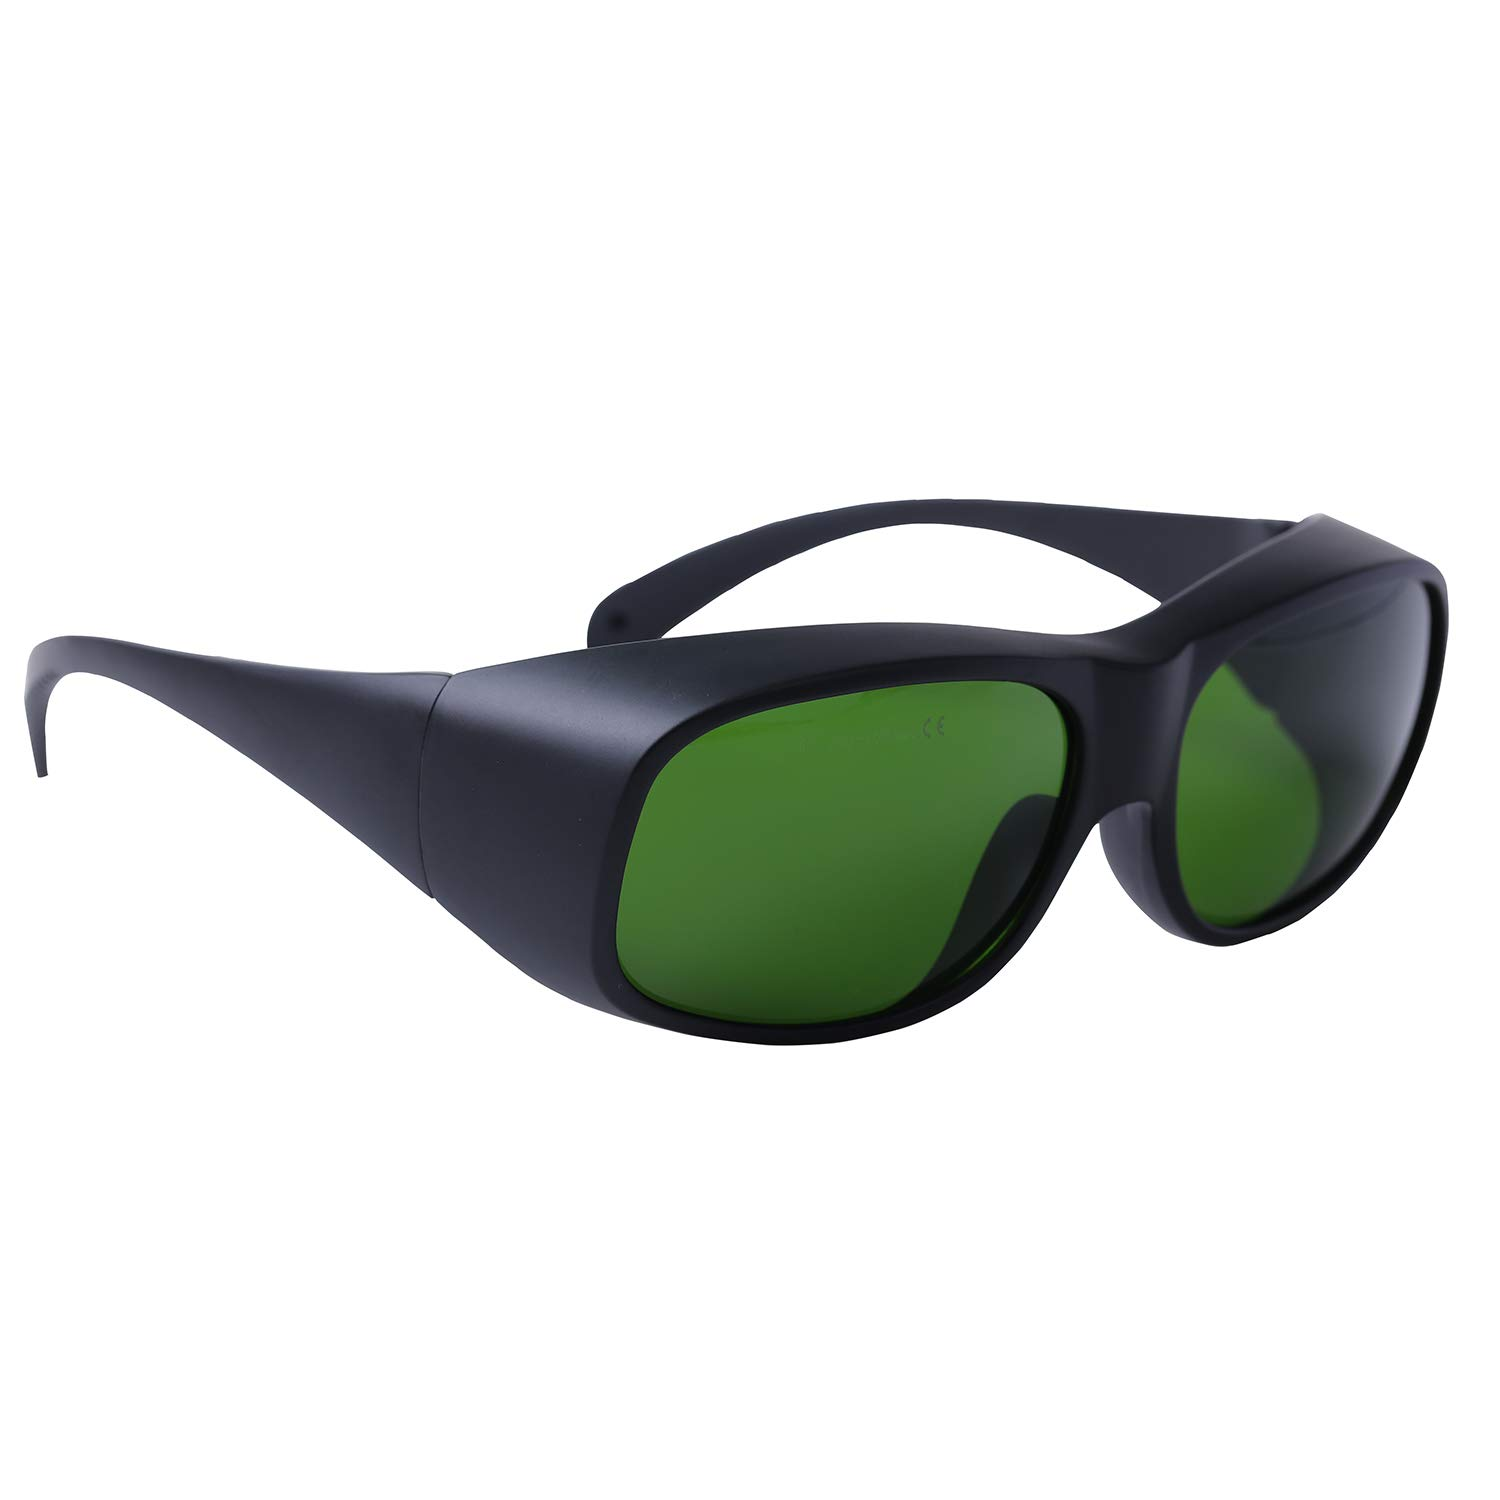 LaserPair IPL Safety Glasses 200-1400nm Protection Glasses Safety Glasses, UV Protection Glasses,Laser Hair Removal Protective Glasses